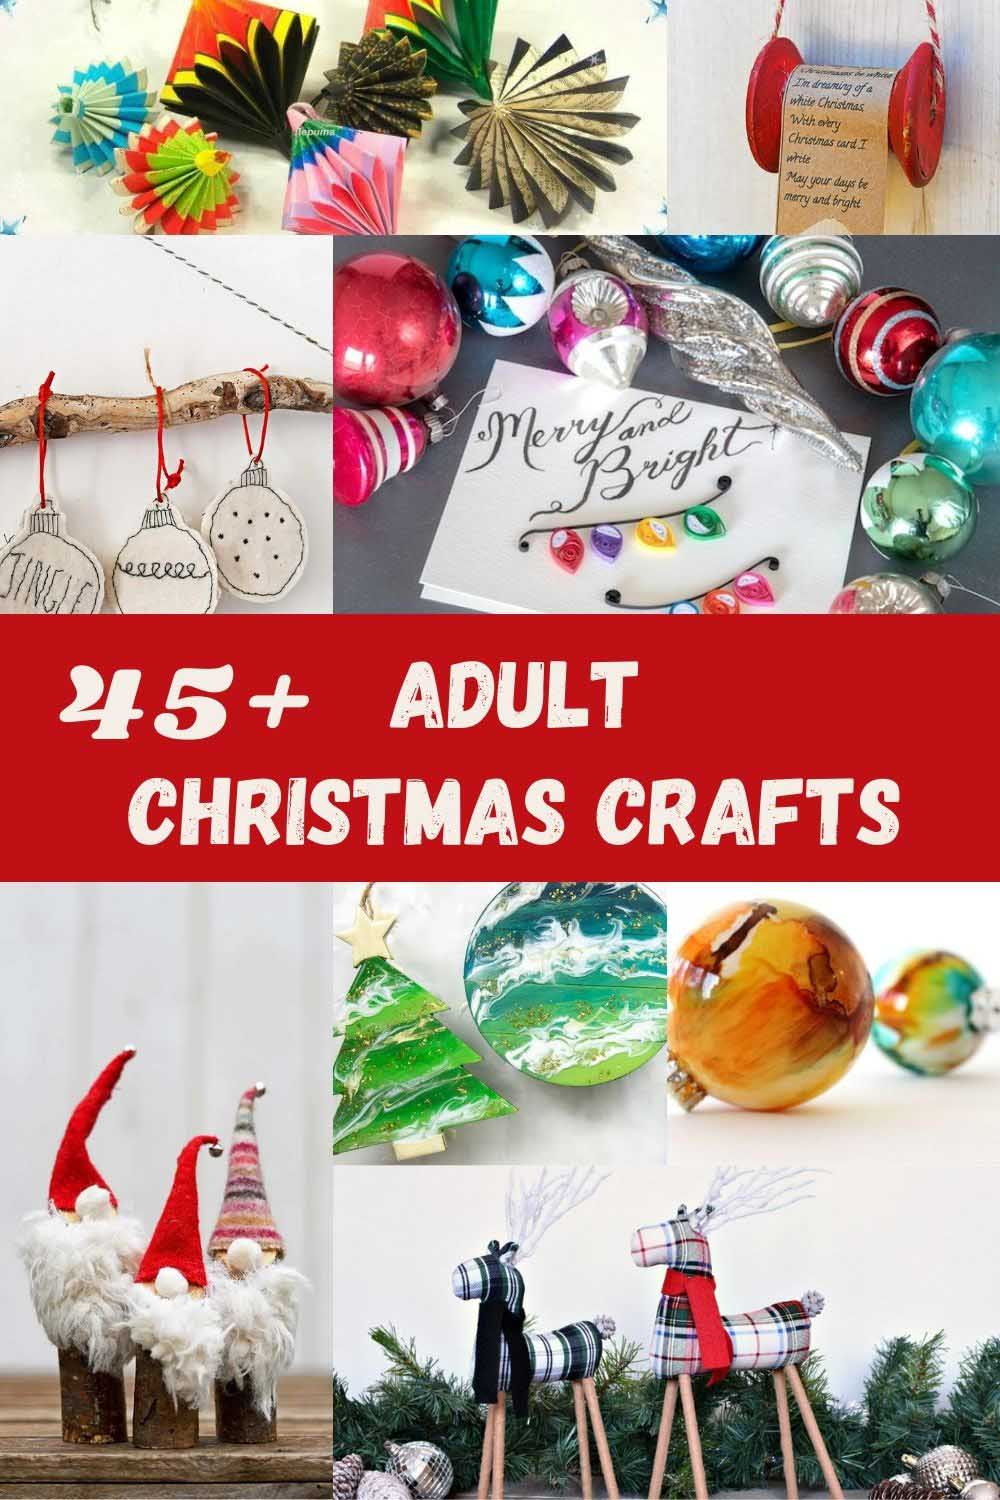 Cool adult Christmas crafts